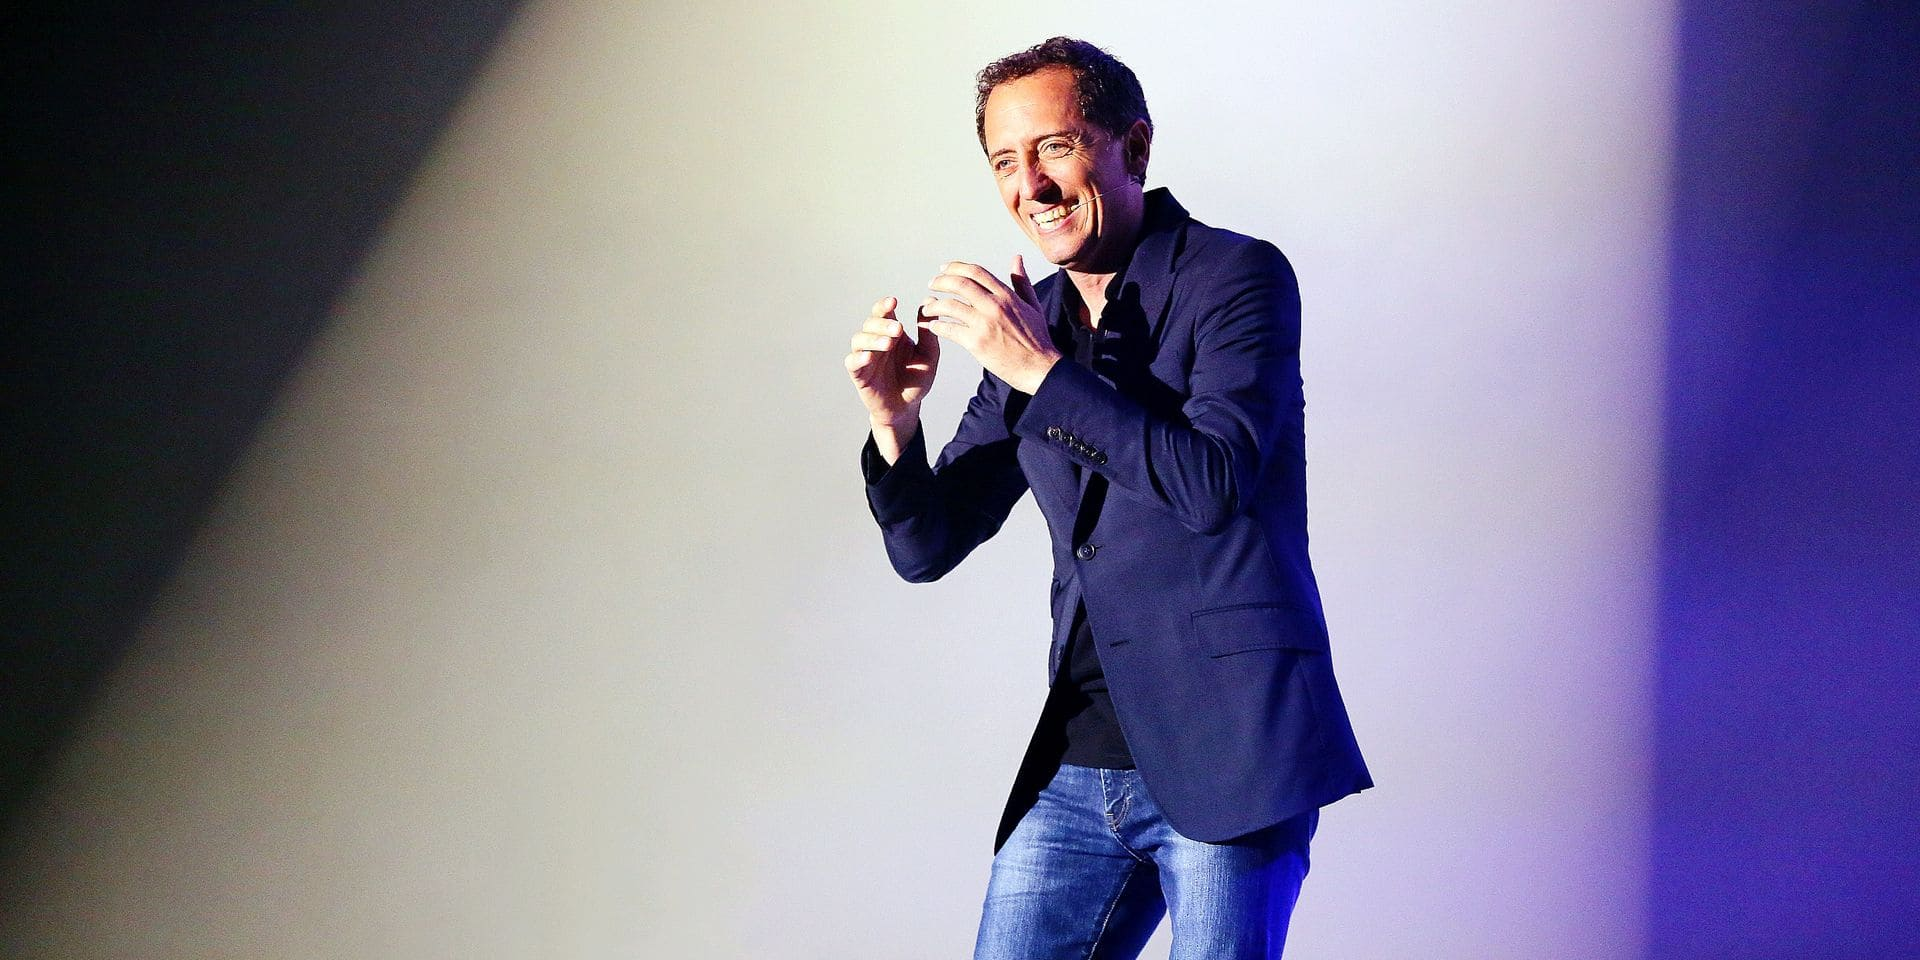 Gad Elmaleh during his show in Bordeaux, France on September 28 , 2014. Photo by Bernard-Salinier/ABACAPRESS.COM Reporters / Abaca